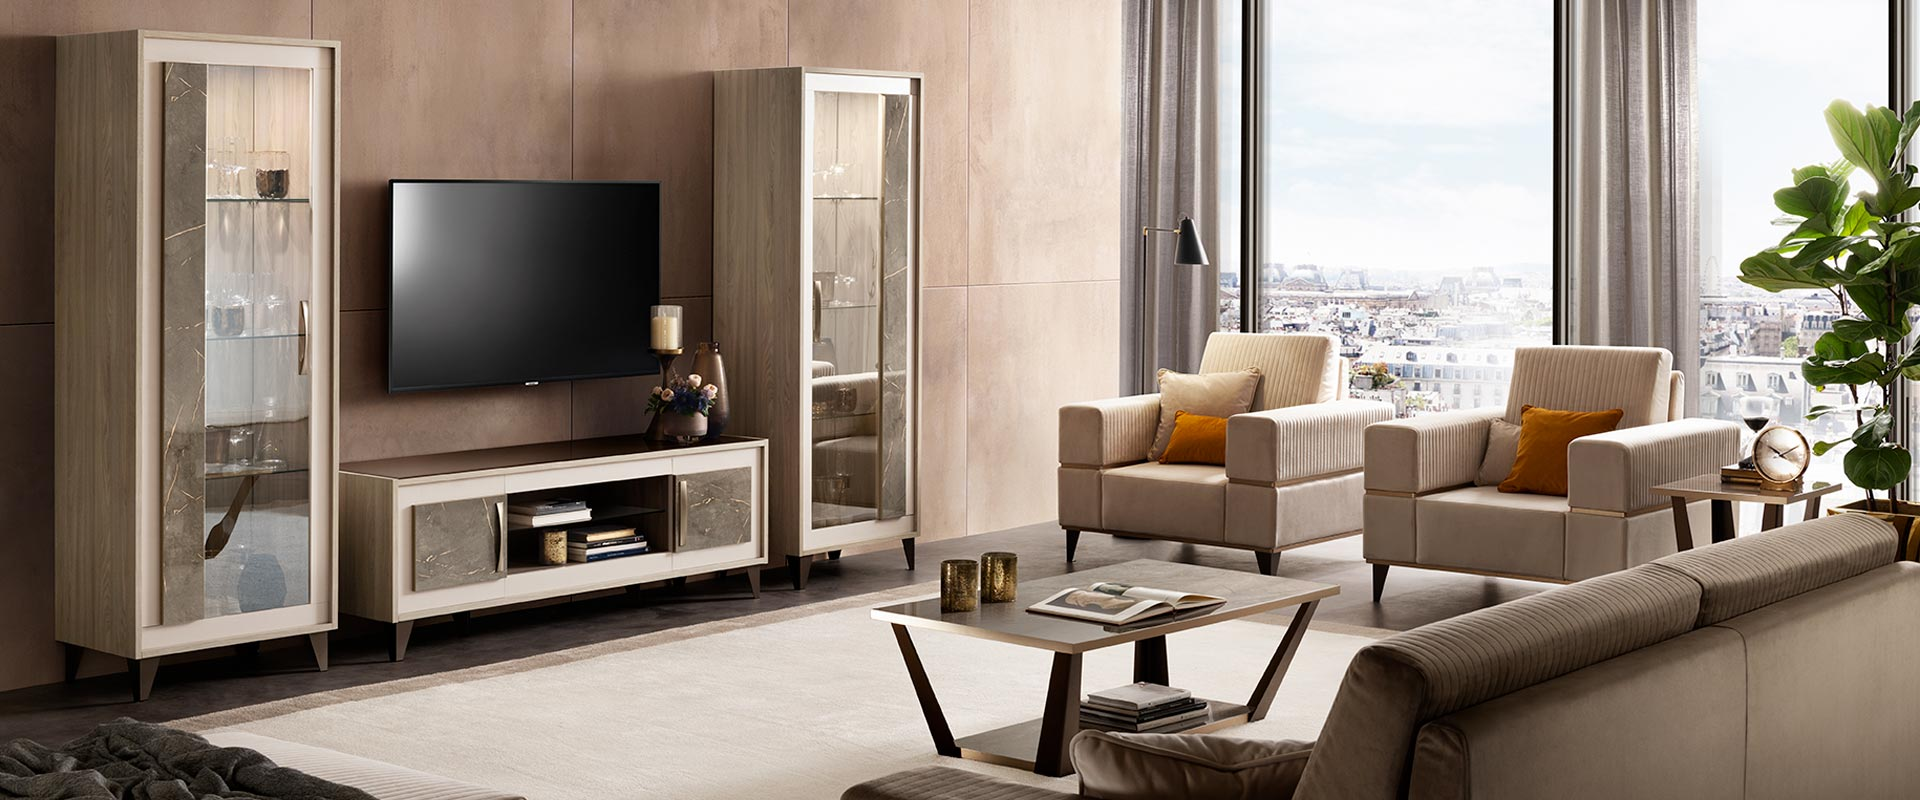 adora interiors ambra tv set composition with sofas and coffee tables